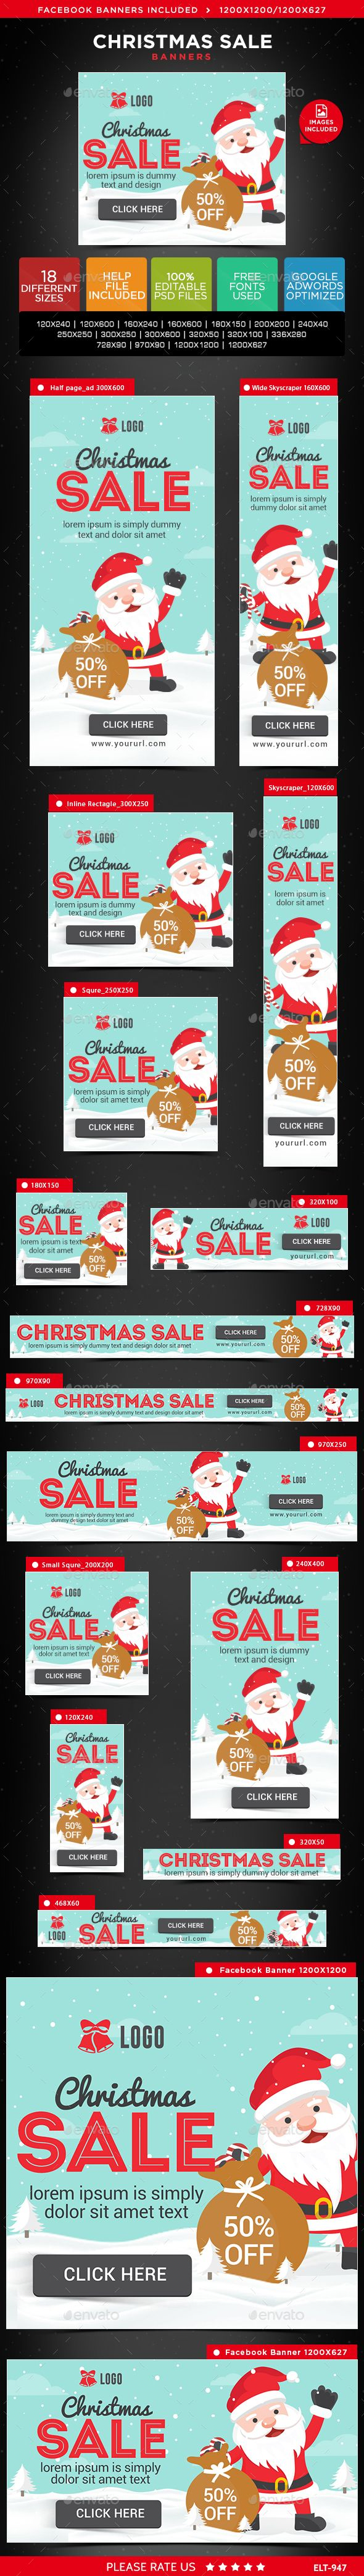 Christmas Sale Web Banners Template PSD #design #ad Download: http://graphicriver.net/item/christmas-sale-banners/14125756?ref=ksioks